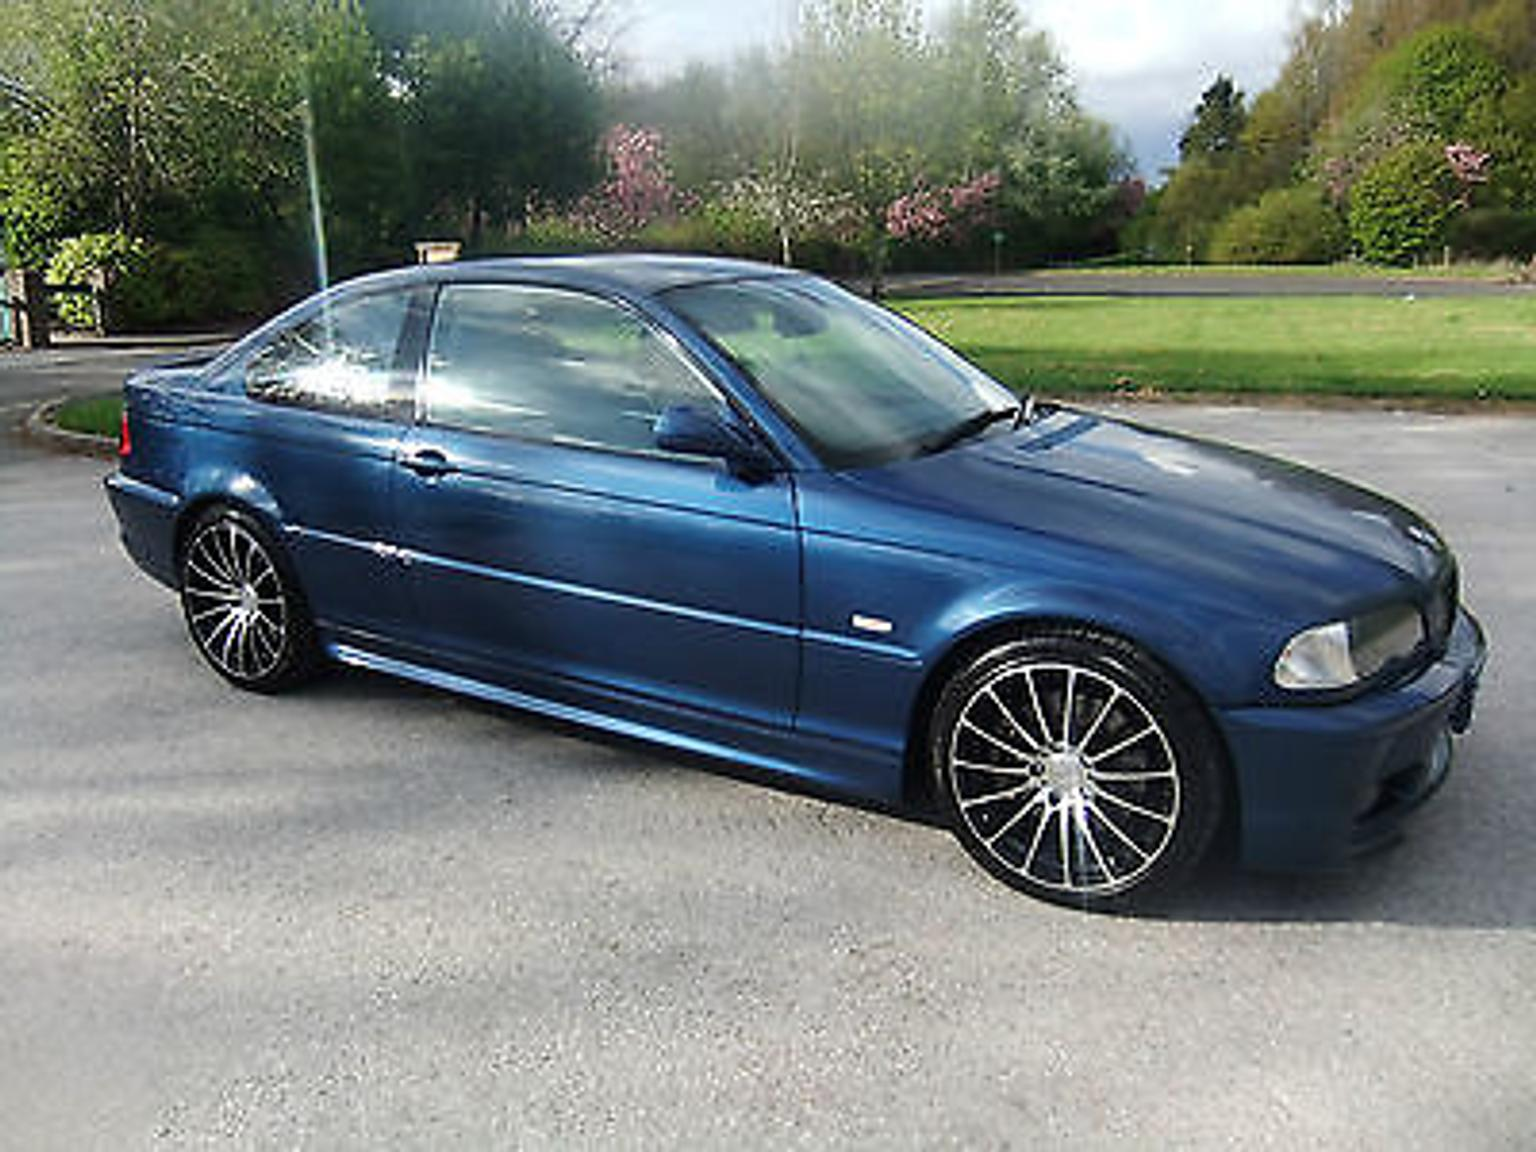 Bmw 330 Ci M Sport Topaz Blue Automatic E46 In M46 Atherton For 3 495 00 For Sale Shpock